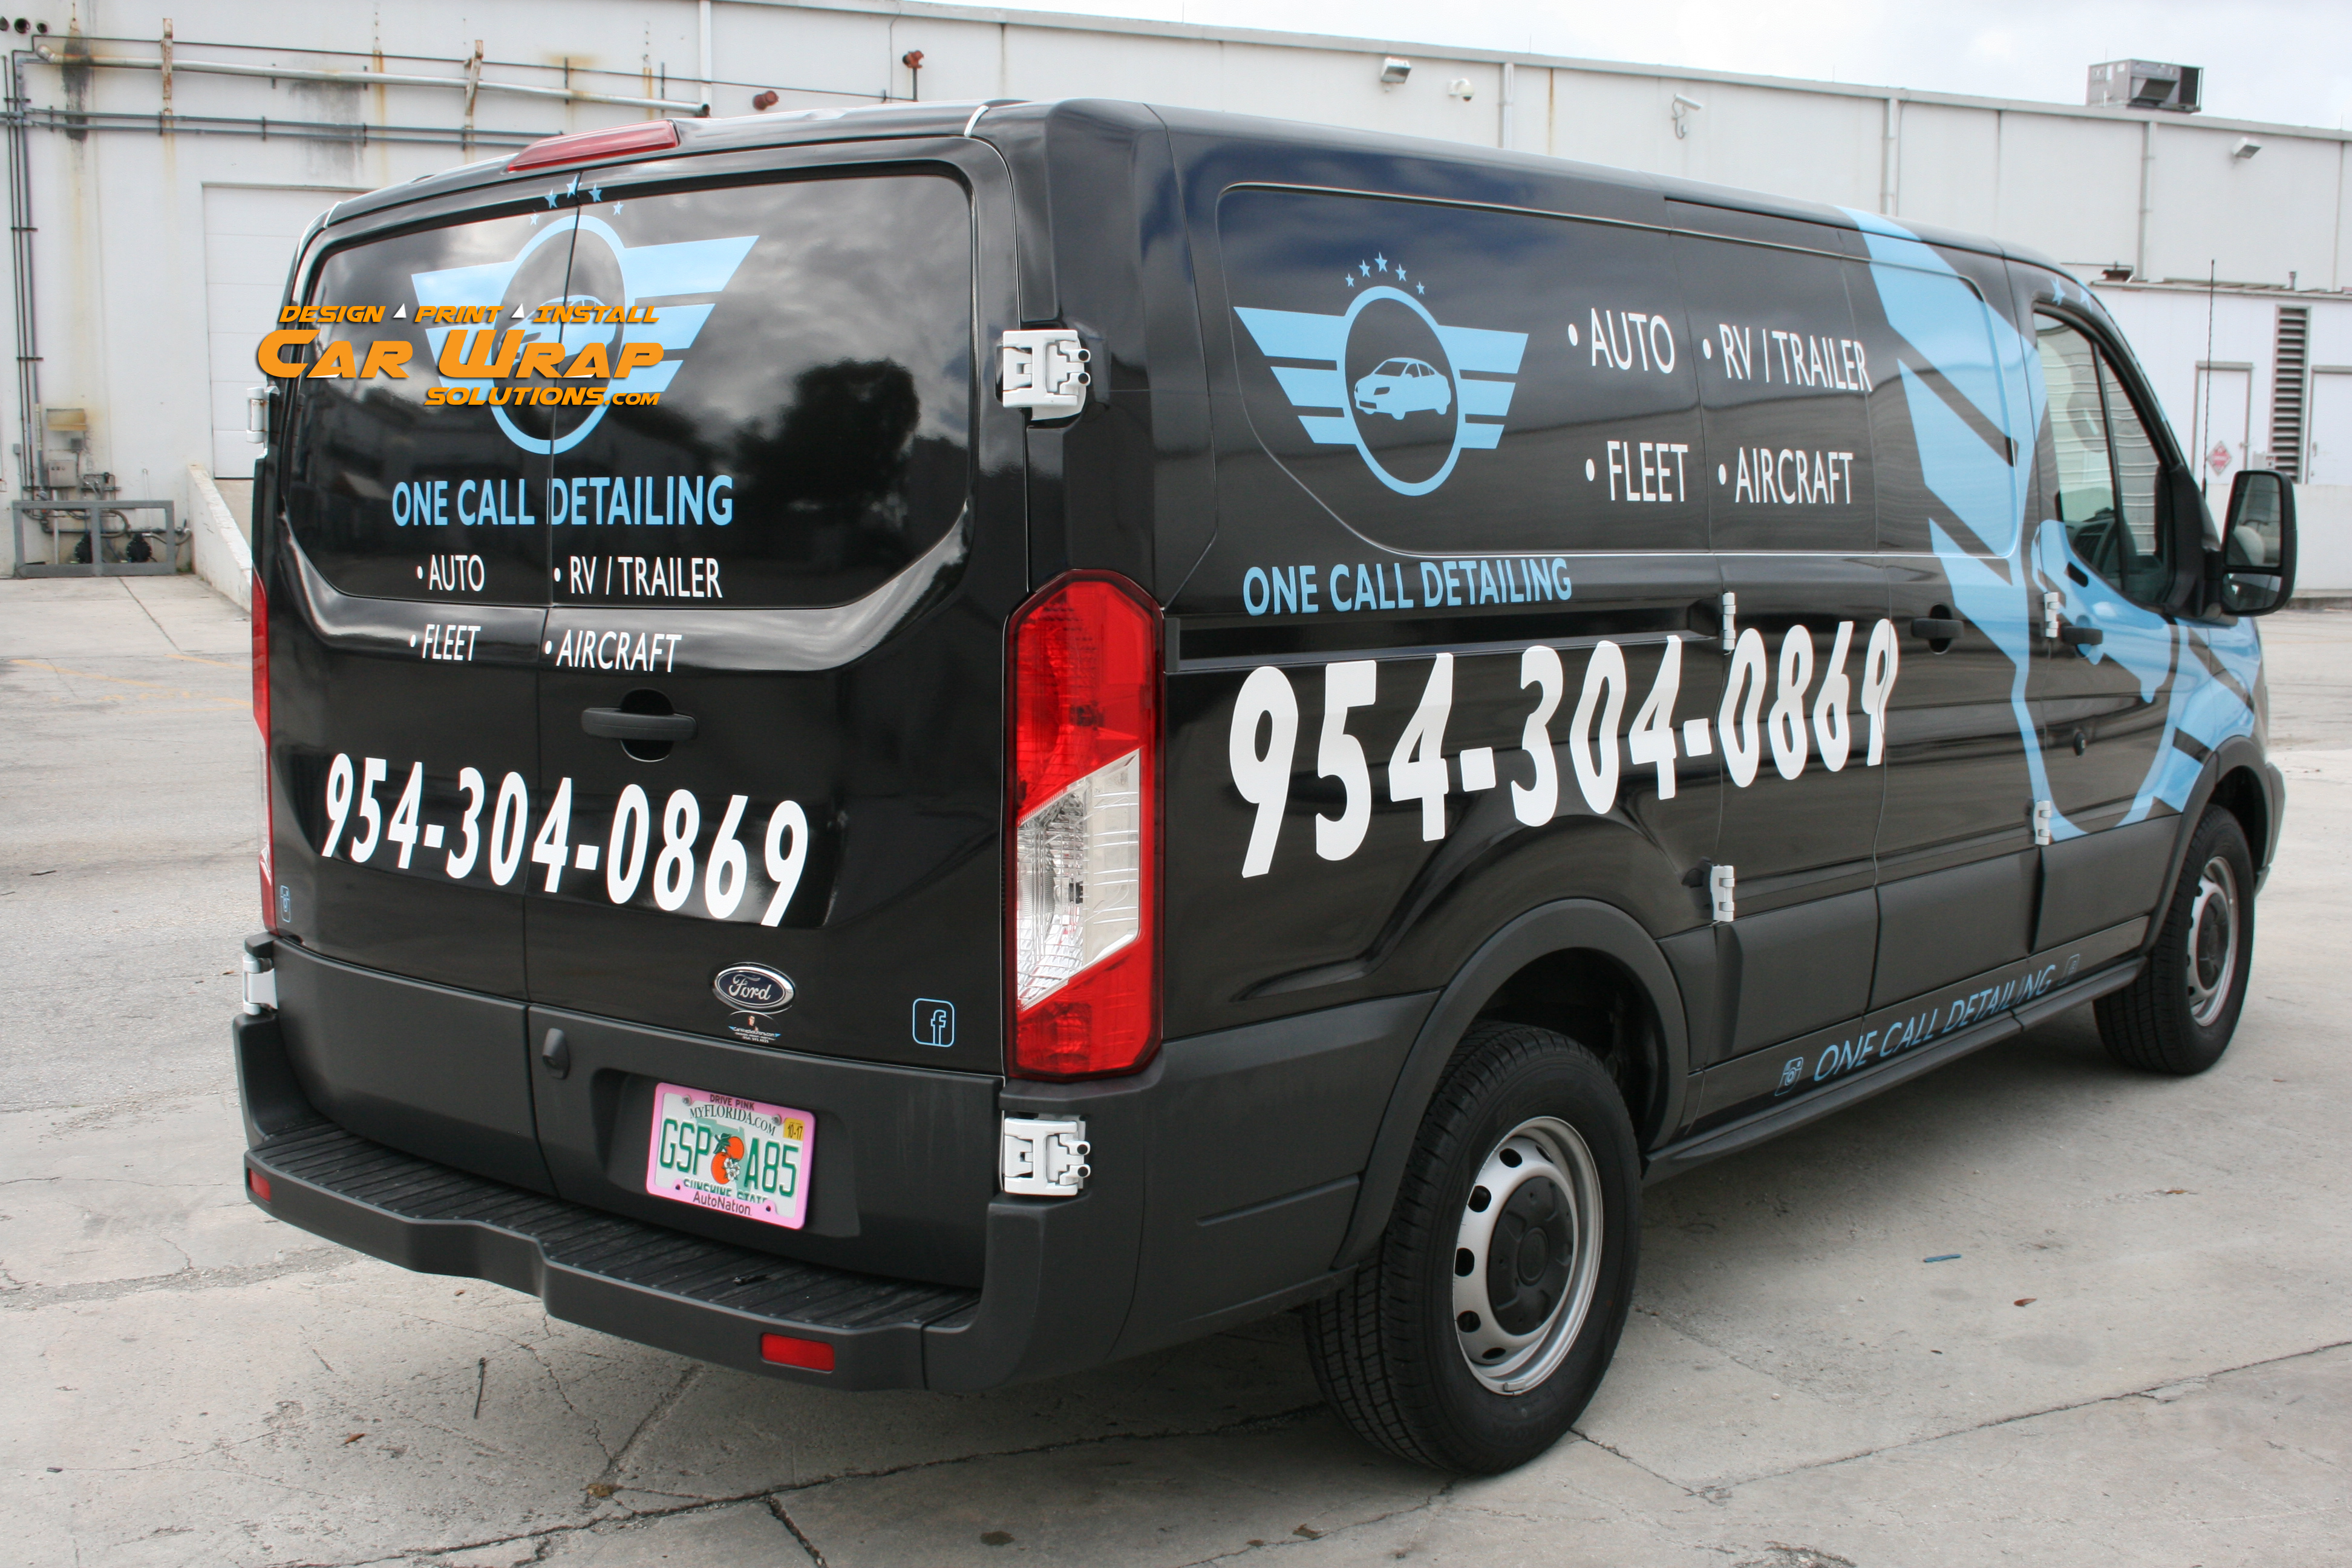 Ford Transit 250 >> Ford Transit Van Local Small Business Wrap Advertising ...